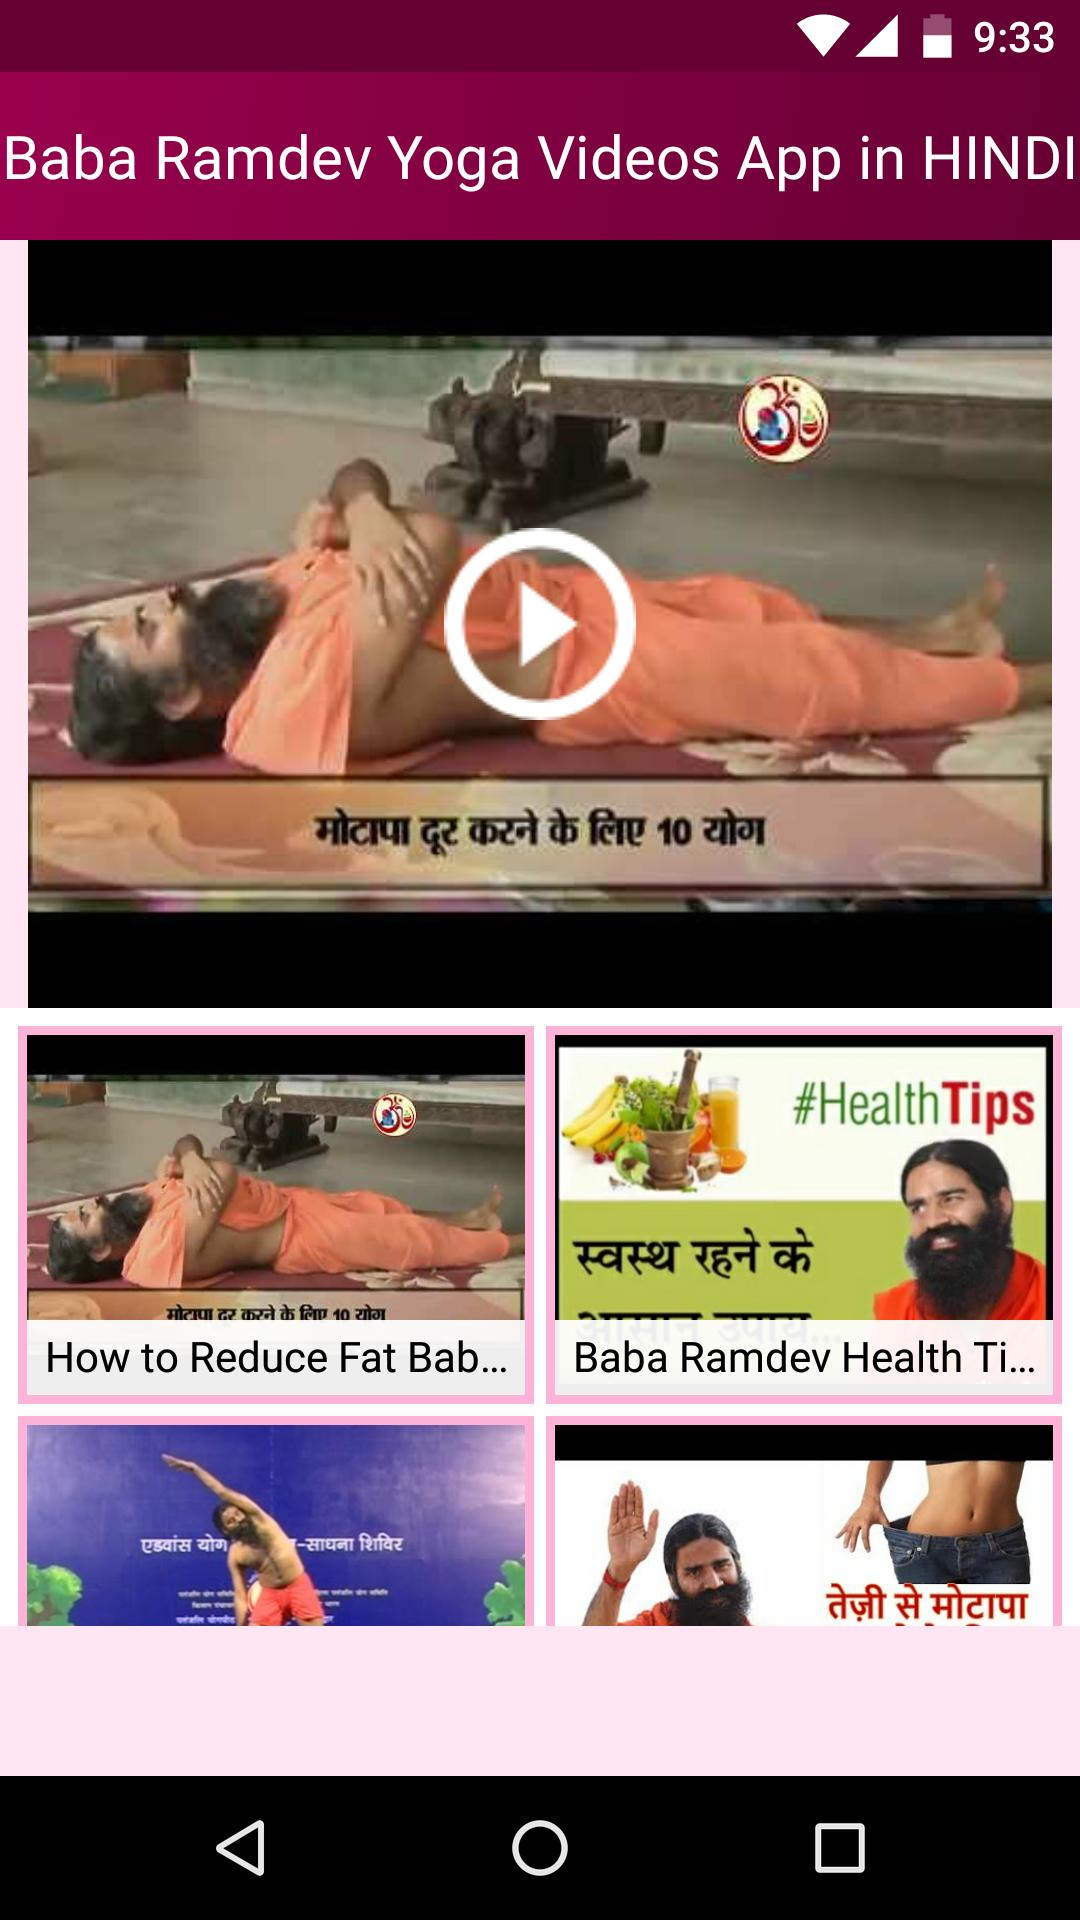 Baba Ramdev Yoga Videos App in HINDI for Android - APK Download